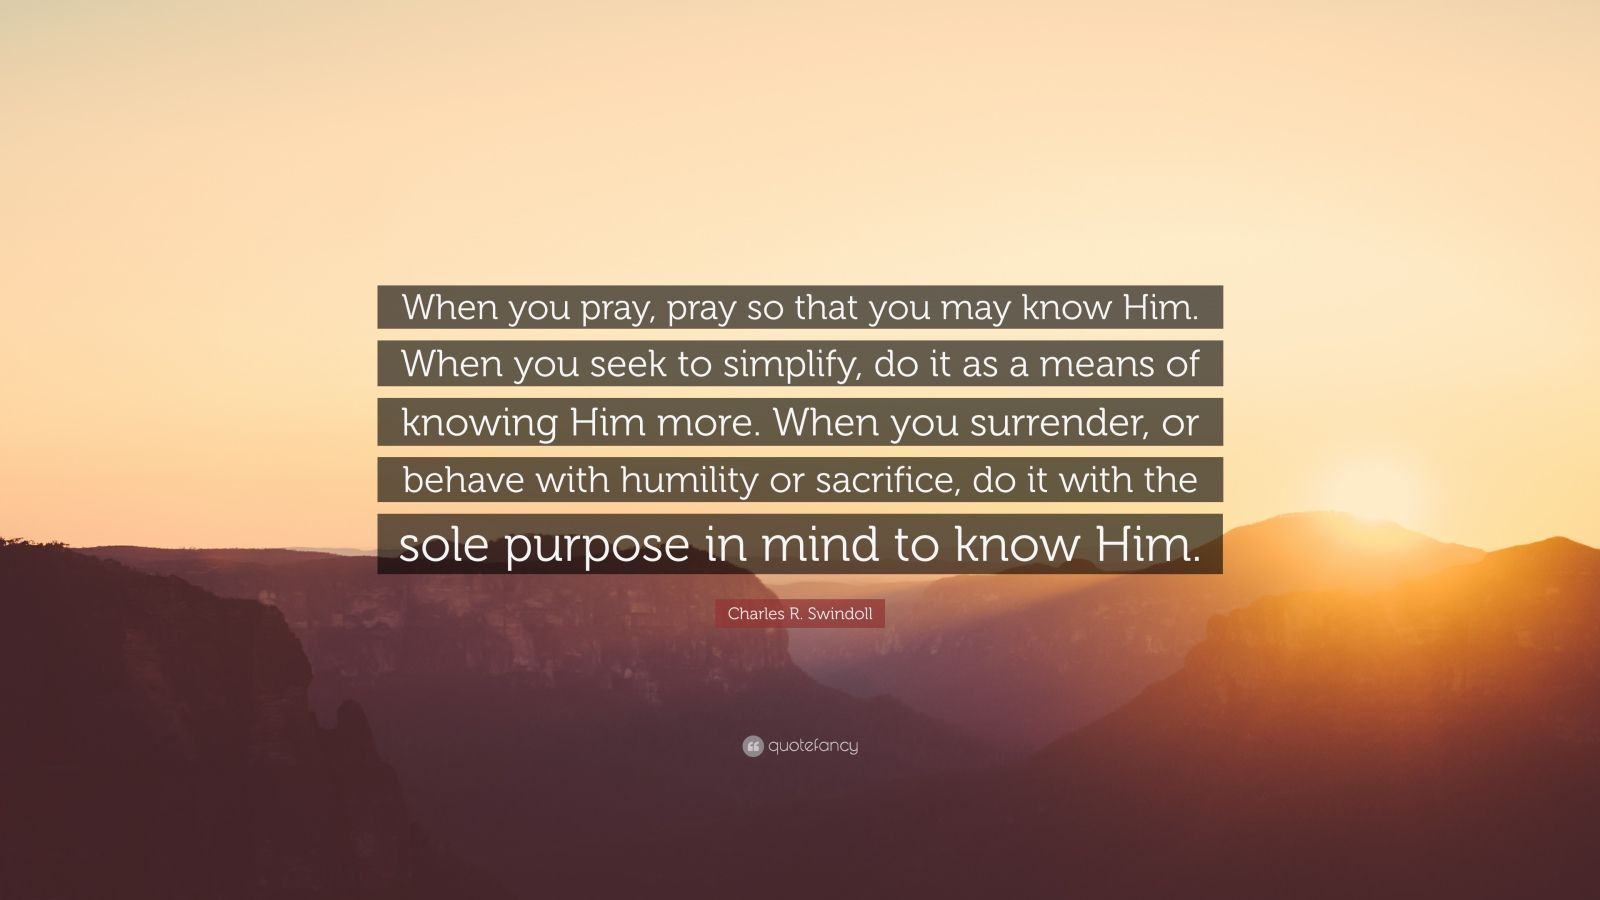 "Charles R. Swindoll Quote: ""When you pray, pray so that you may know Him. When you seek to simplify, do it as a means of knowing Him more. When you surrender, or behave with humility or sacrifice, do it with the sole purpose in mind to know Him."""